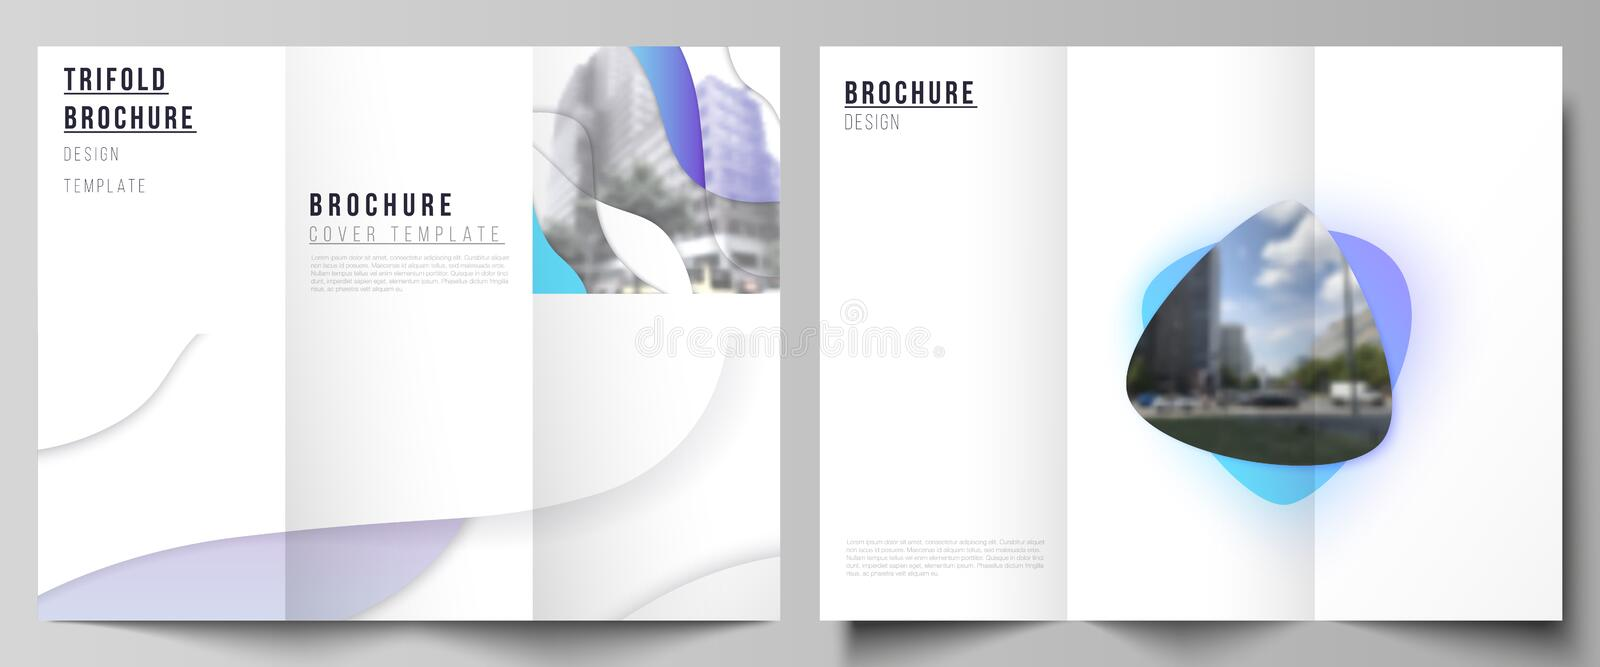 Minimal vector illustration of editable layouts. Modern creative covers design templates for trifold brochure or flyer. Blue color gradient abstract dynamic stock illustration